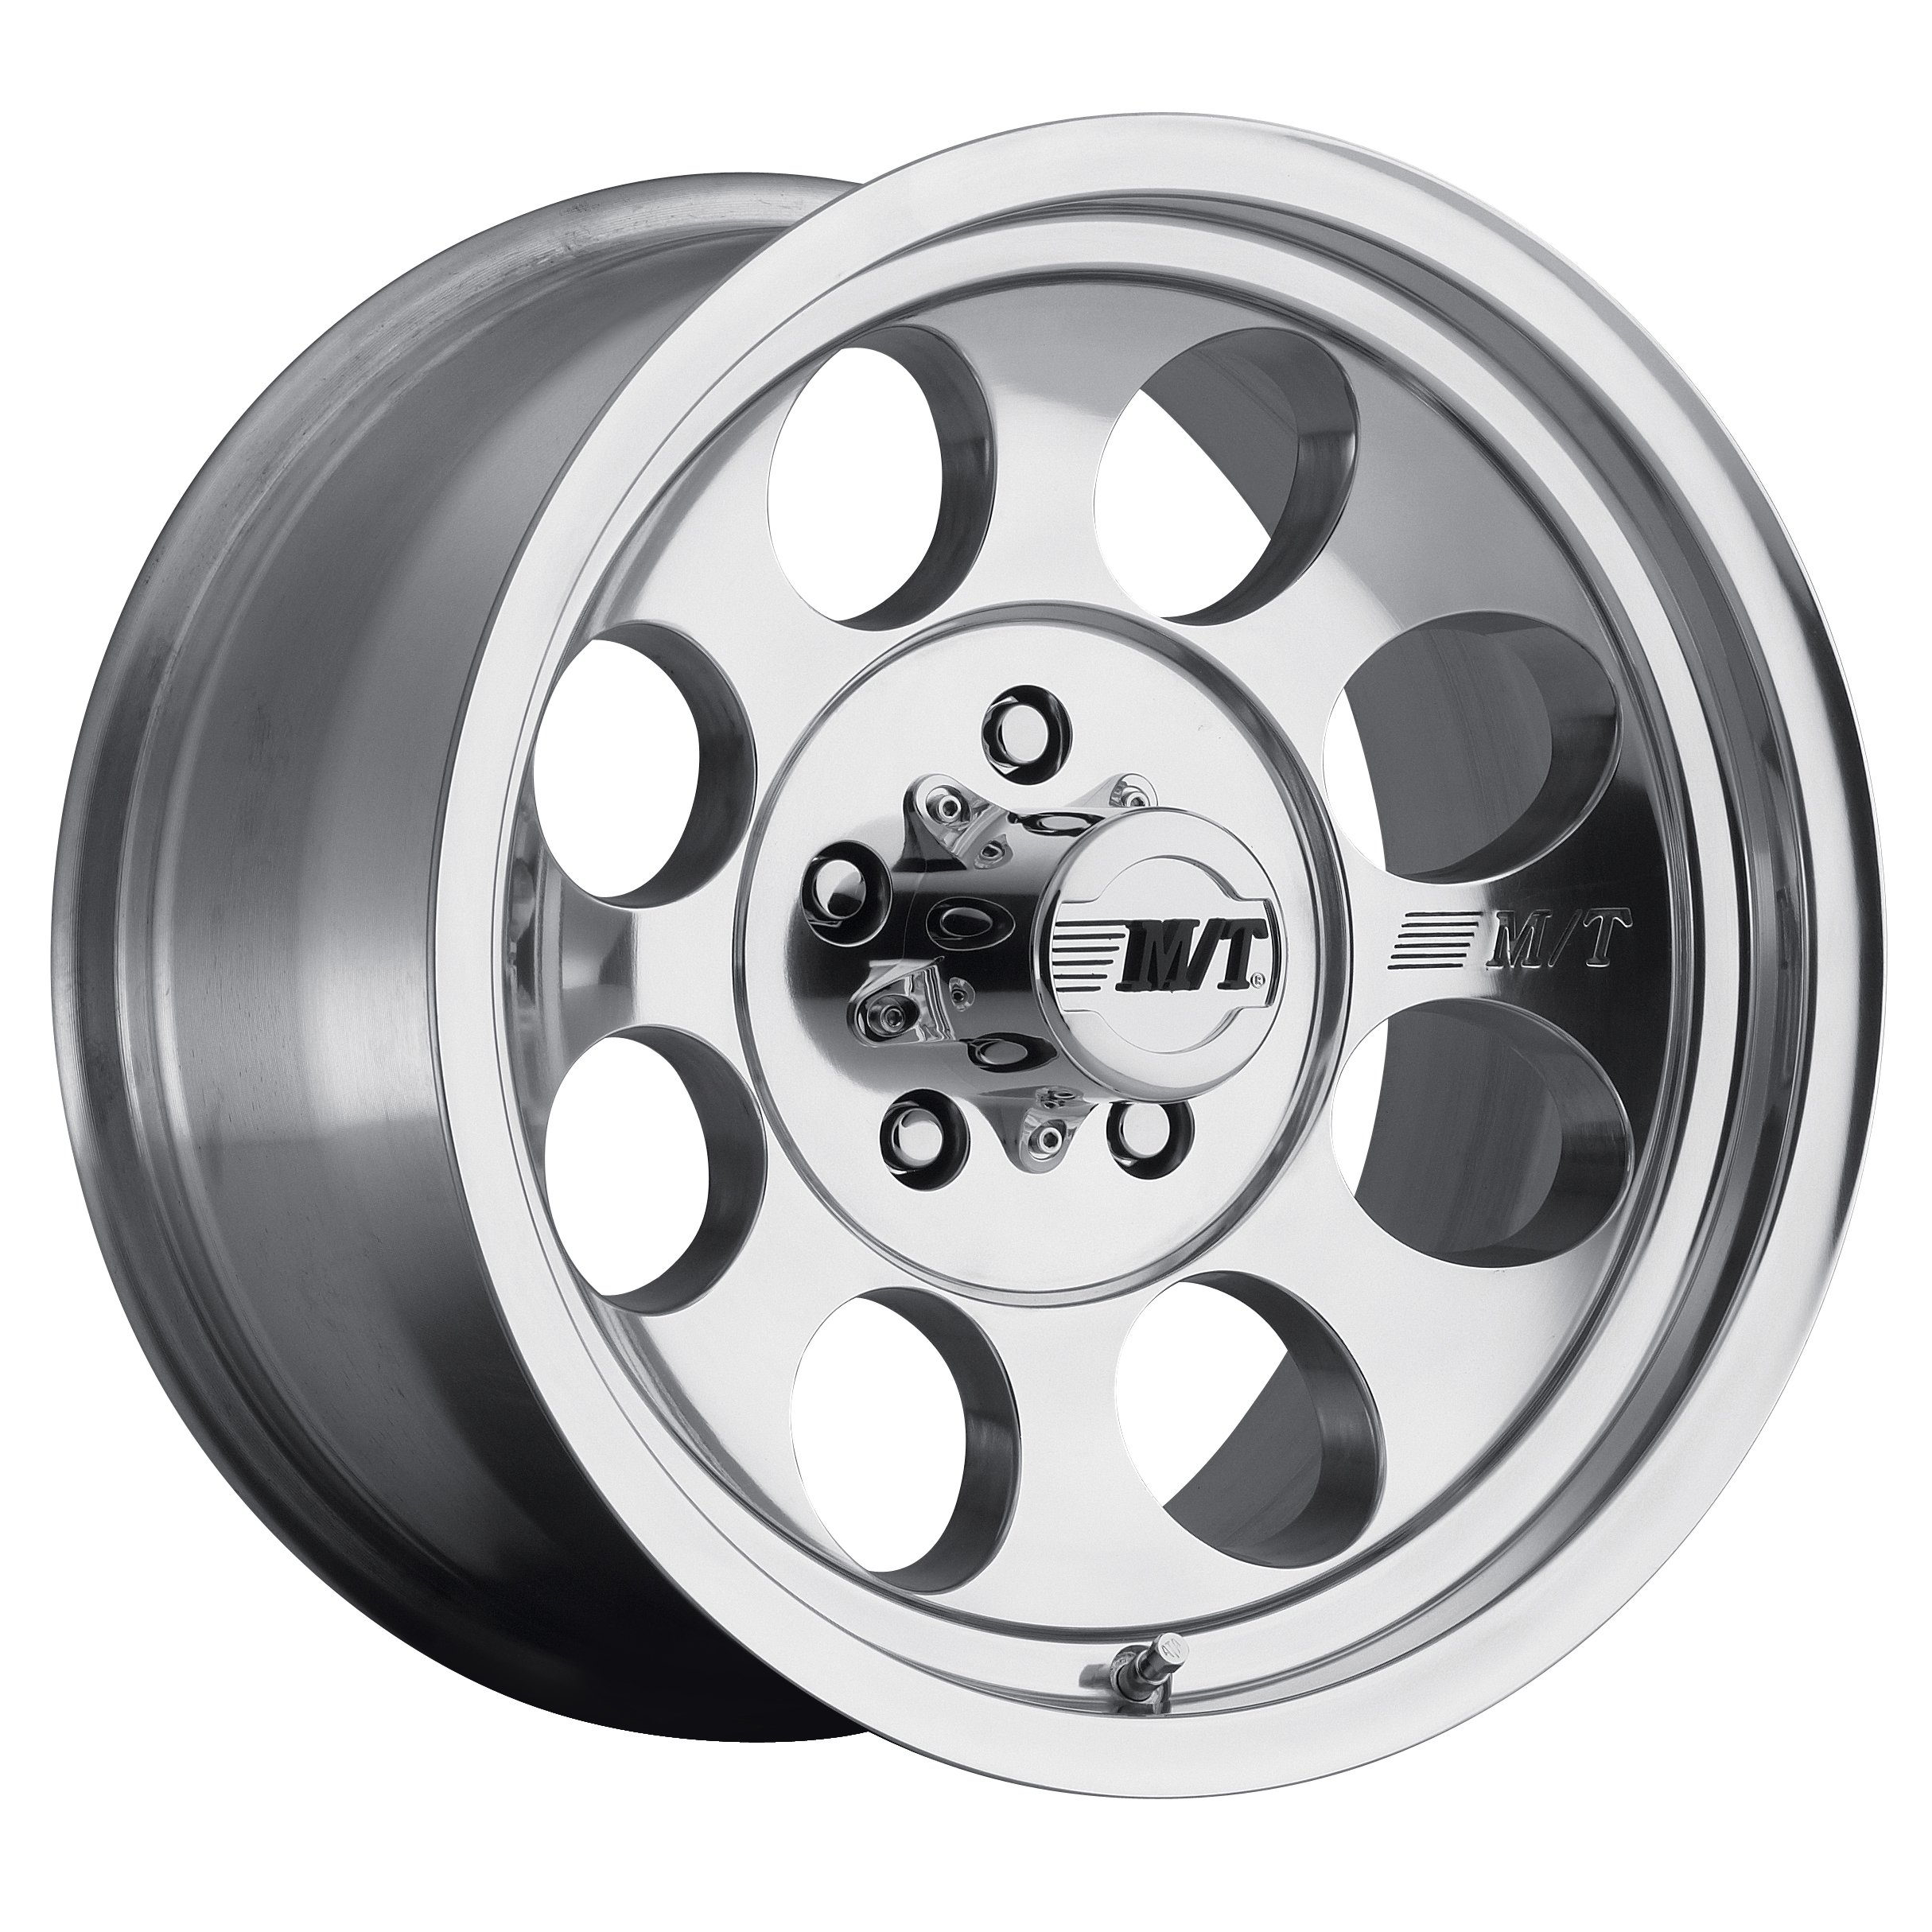 Mickey Thompson Classic III Wheel with Polished Finish (17x9''/5x5.5'') -12 millimeters offset